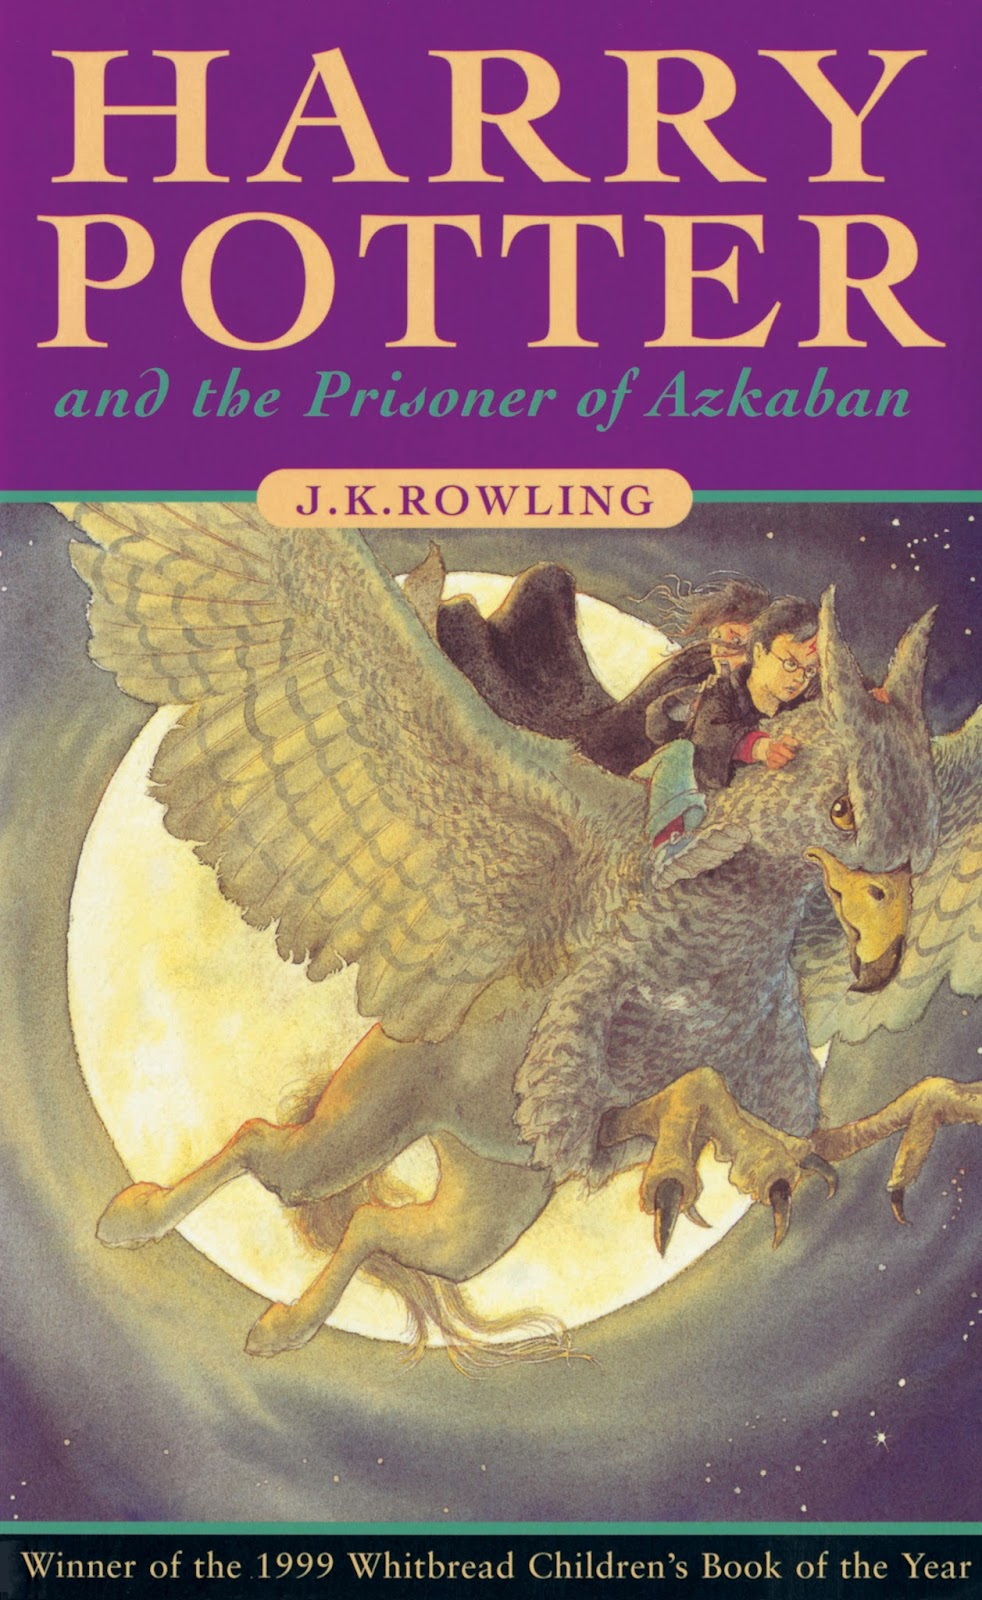 Harry+Potter+and+the+Prisoner+of+Azkaban